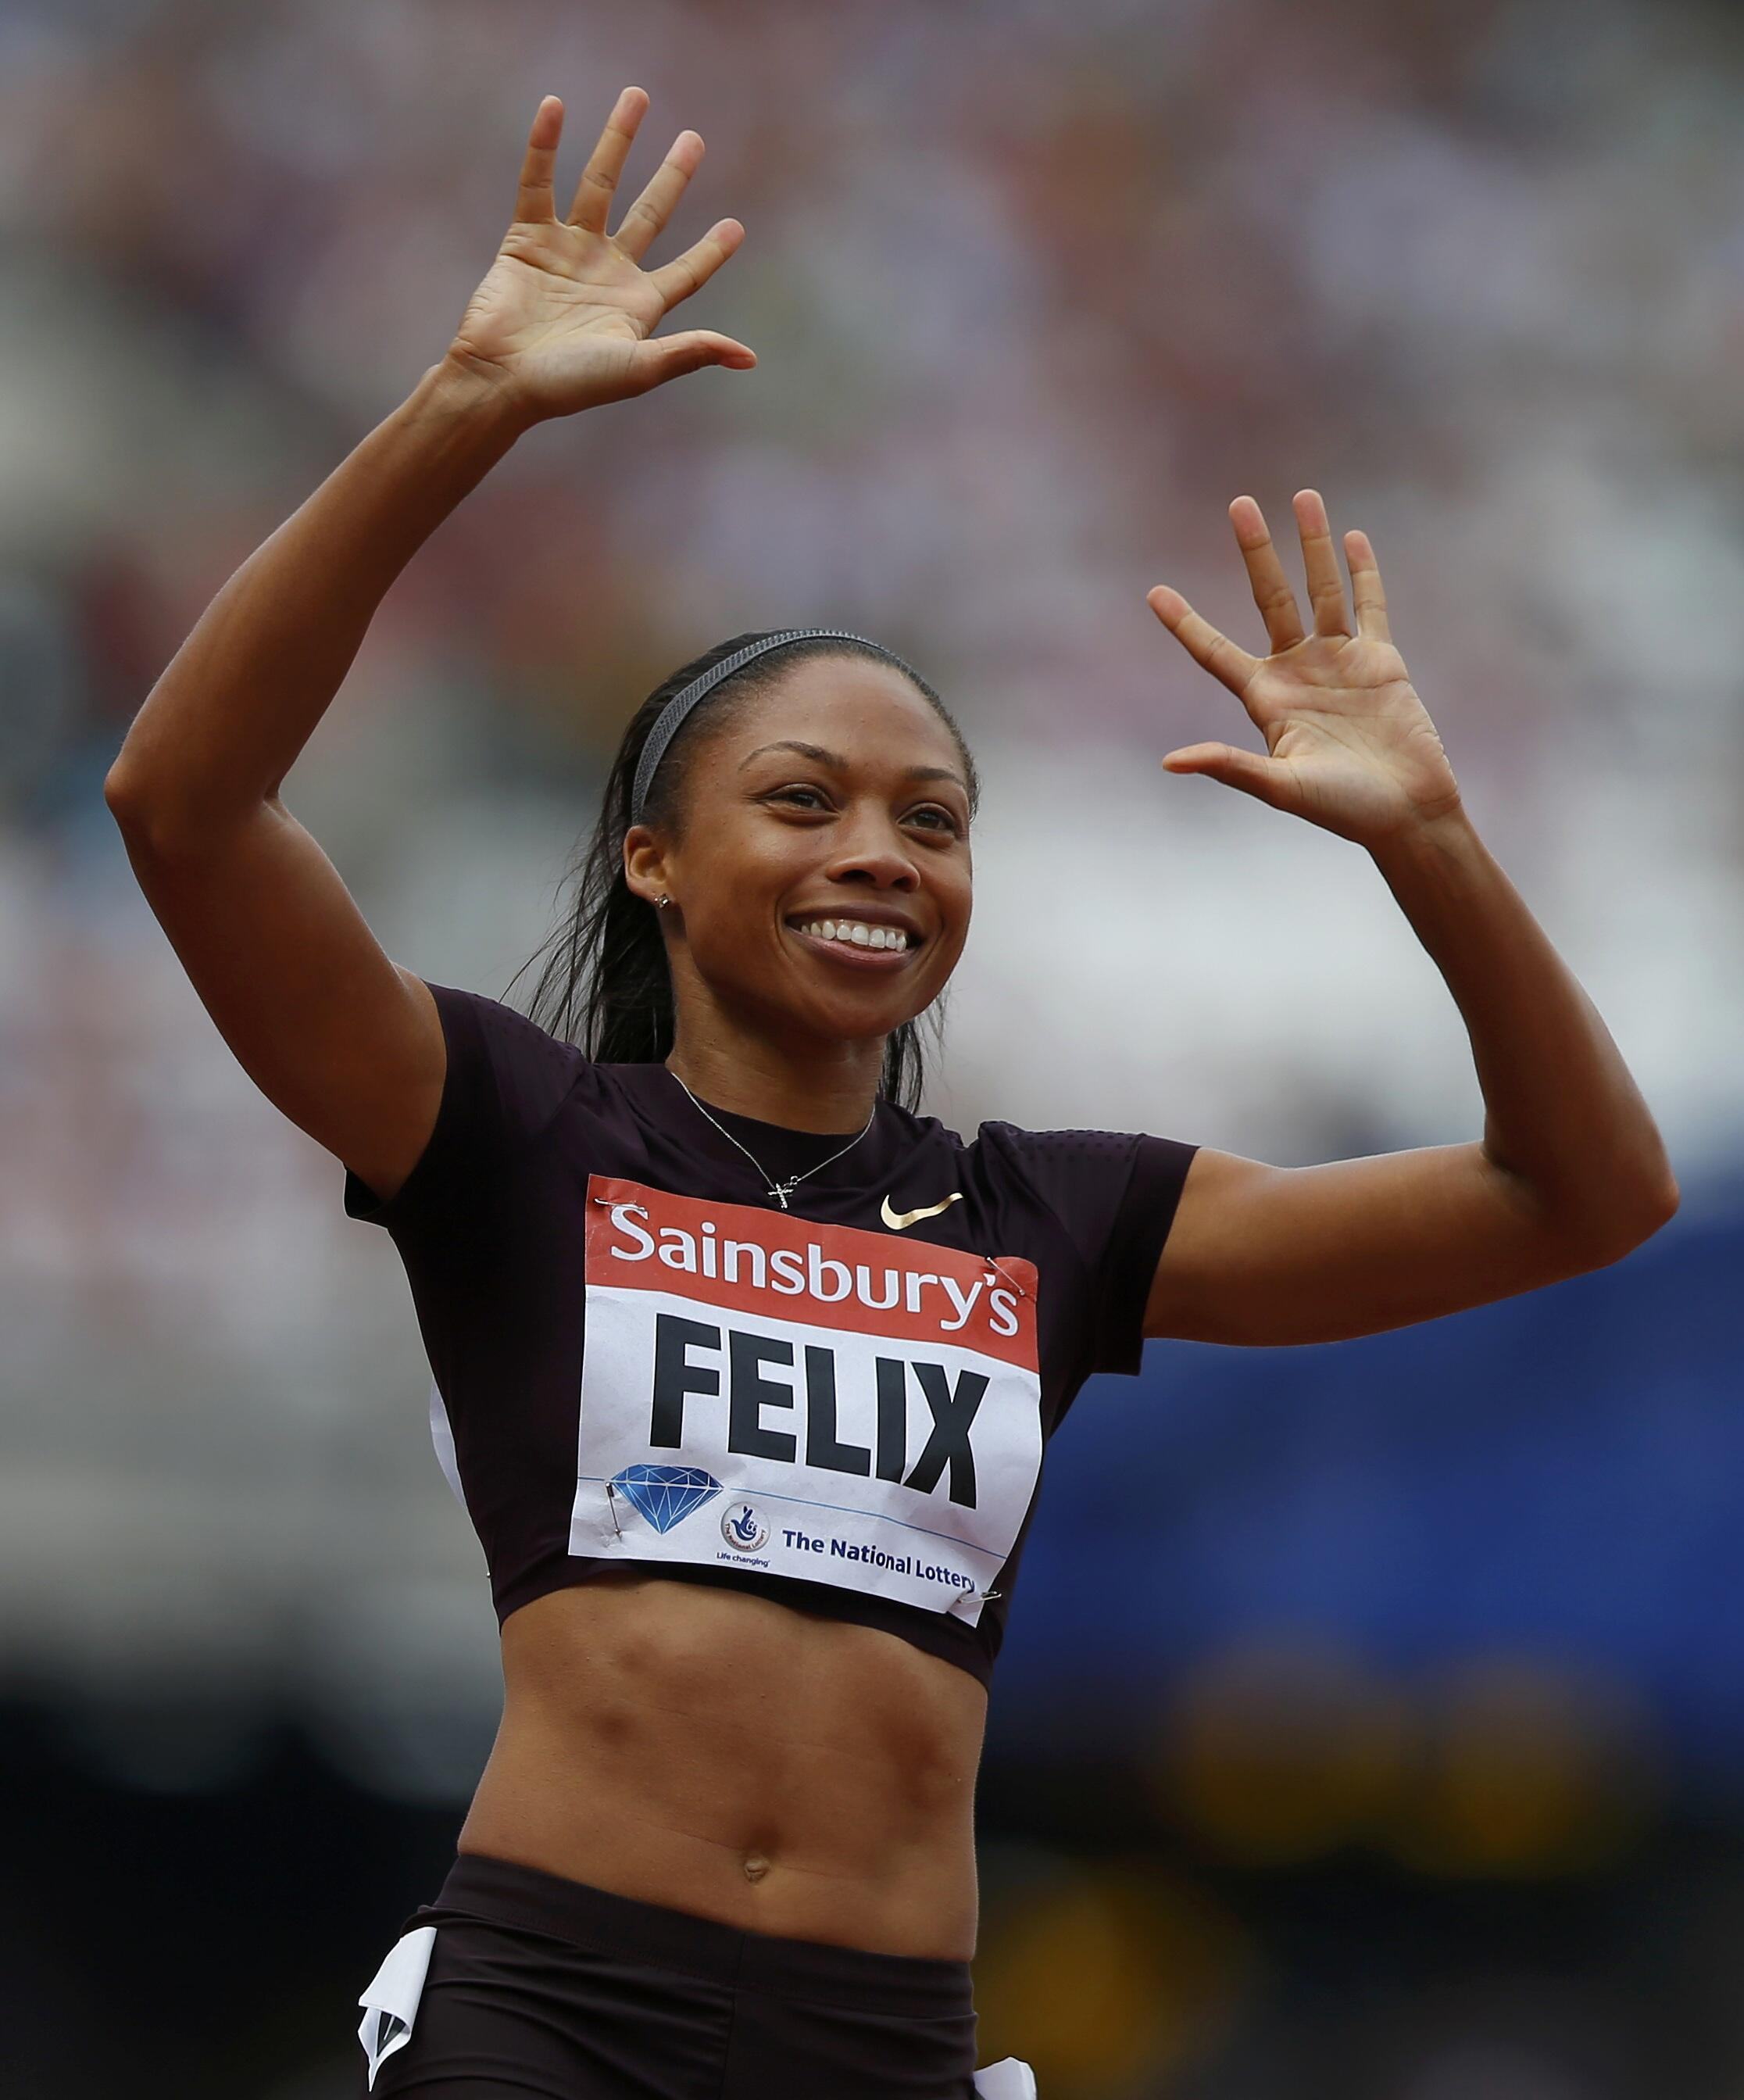 Allyson Felix of the U.S. reacts after winning the women's 200m at the London Diamond League 'Anniversary Games' athletics meeting at the Olympic Stadium, in east London July 27, 2013.